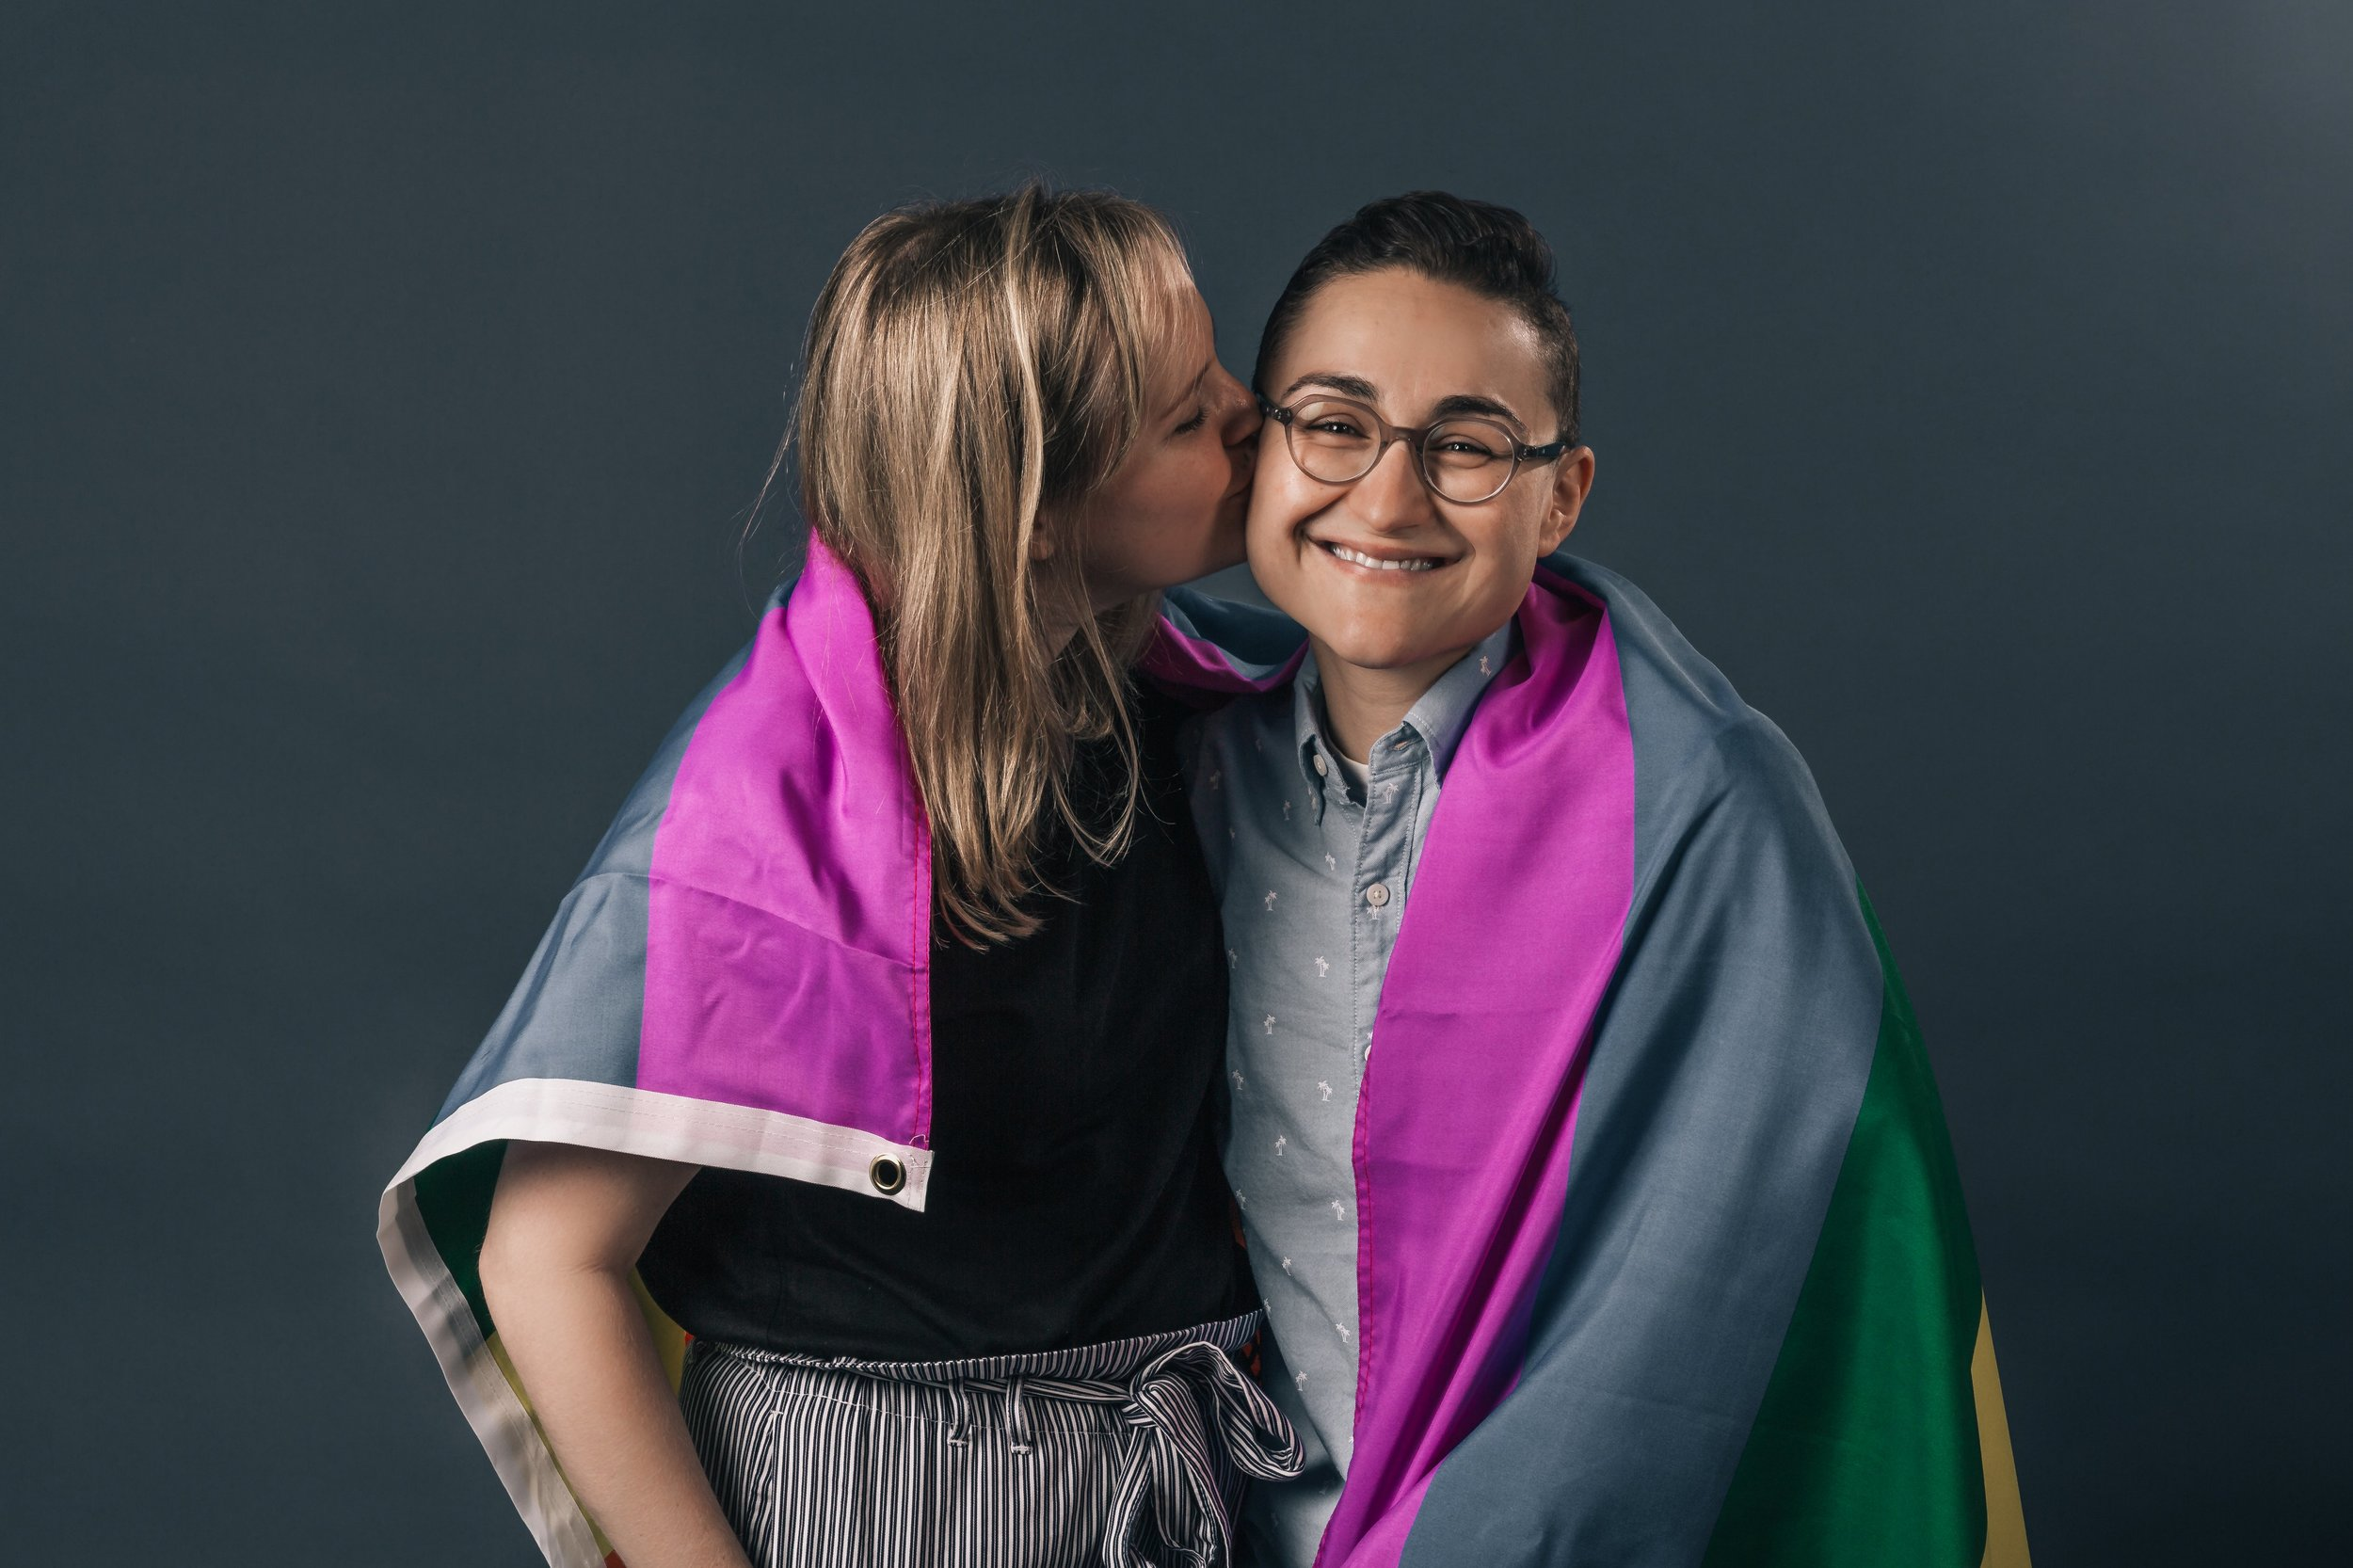 couple-wrapped-in-pride-flag-kiss_4460x4460.jpg